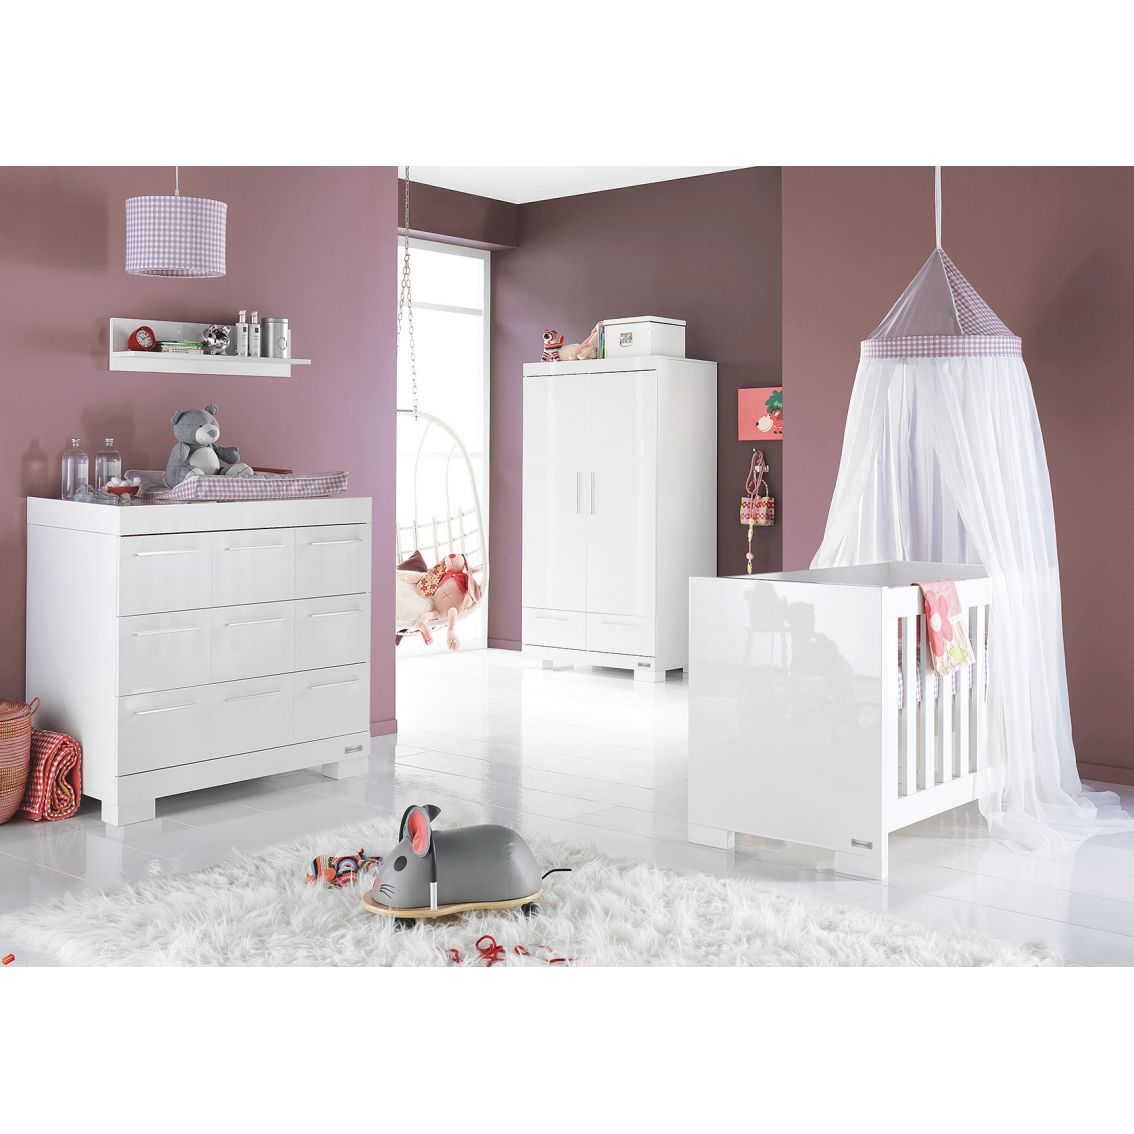 Babystyle Aspen 3 Piece Nursery Furniture Set